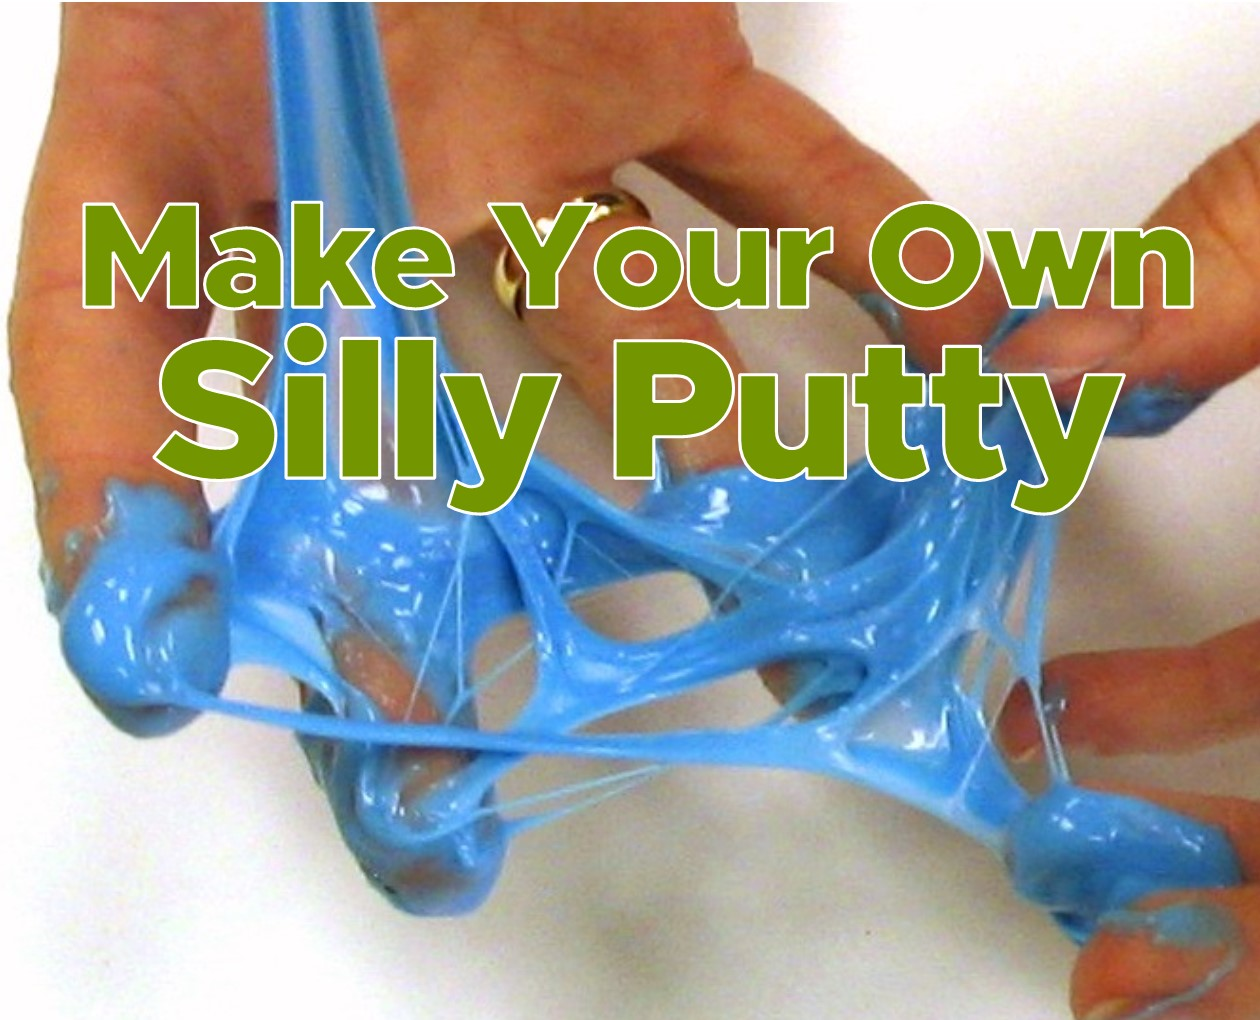 This Putty Is so Silly. . .